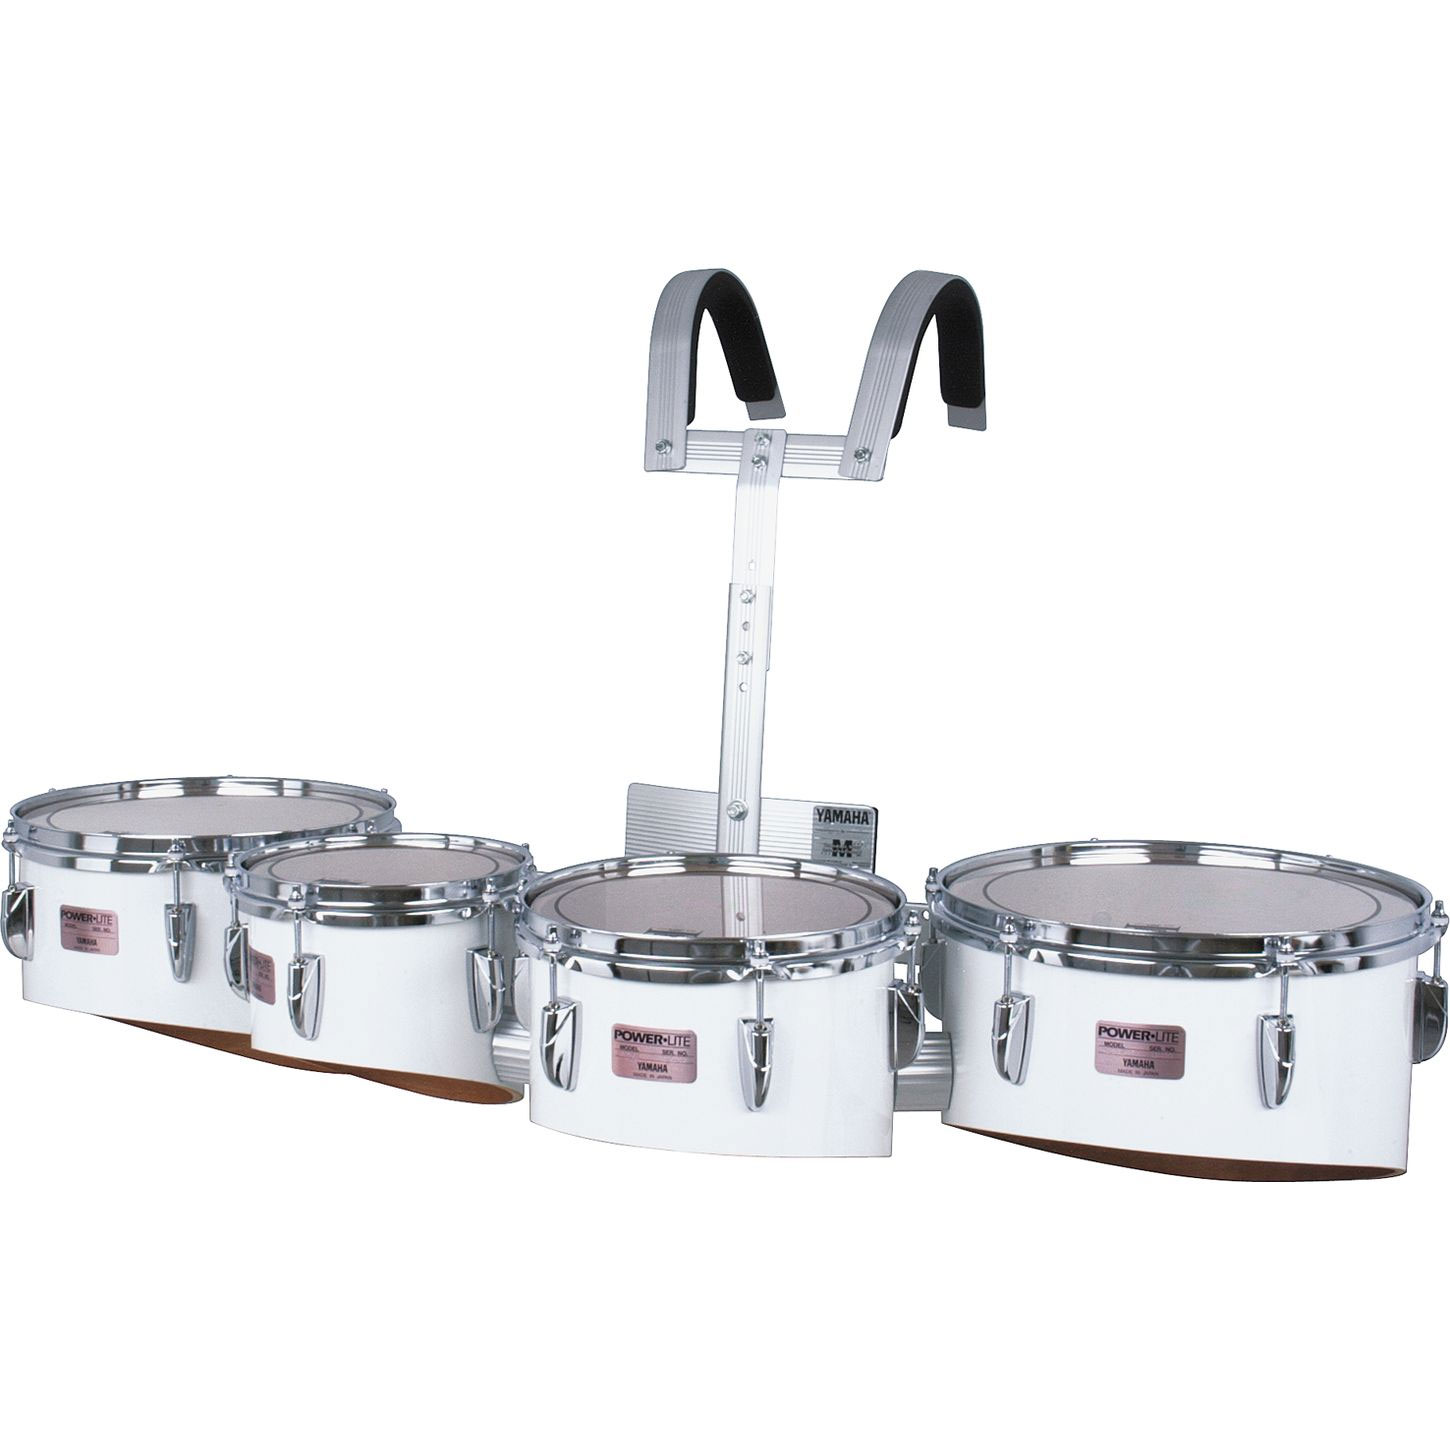 """Yamaha 8-10-12-13"""" Power-Lite Drums/Carrier/Case Marching ..."""